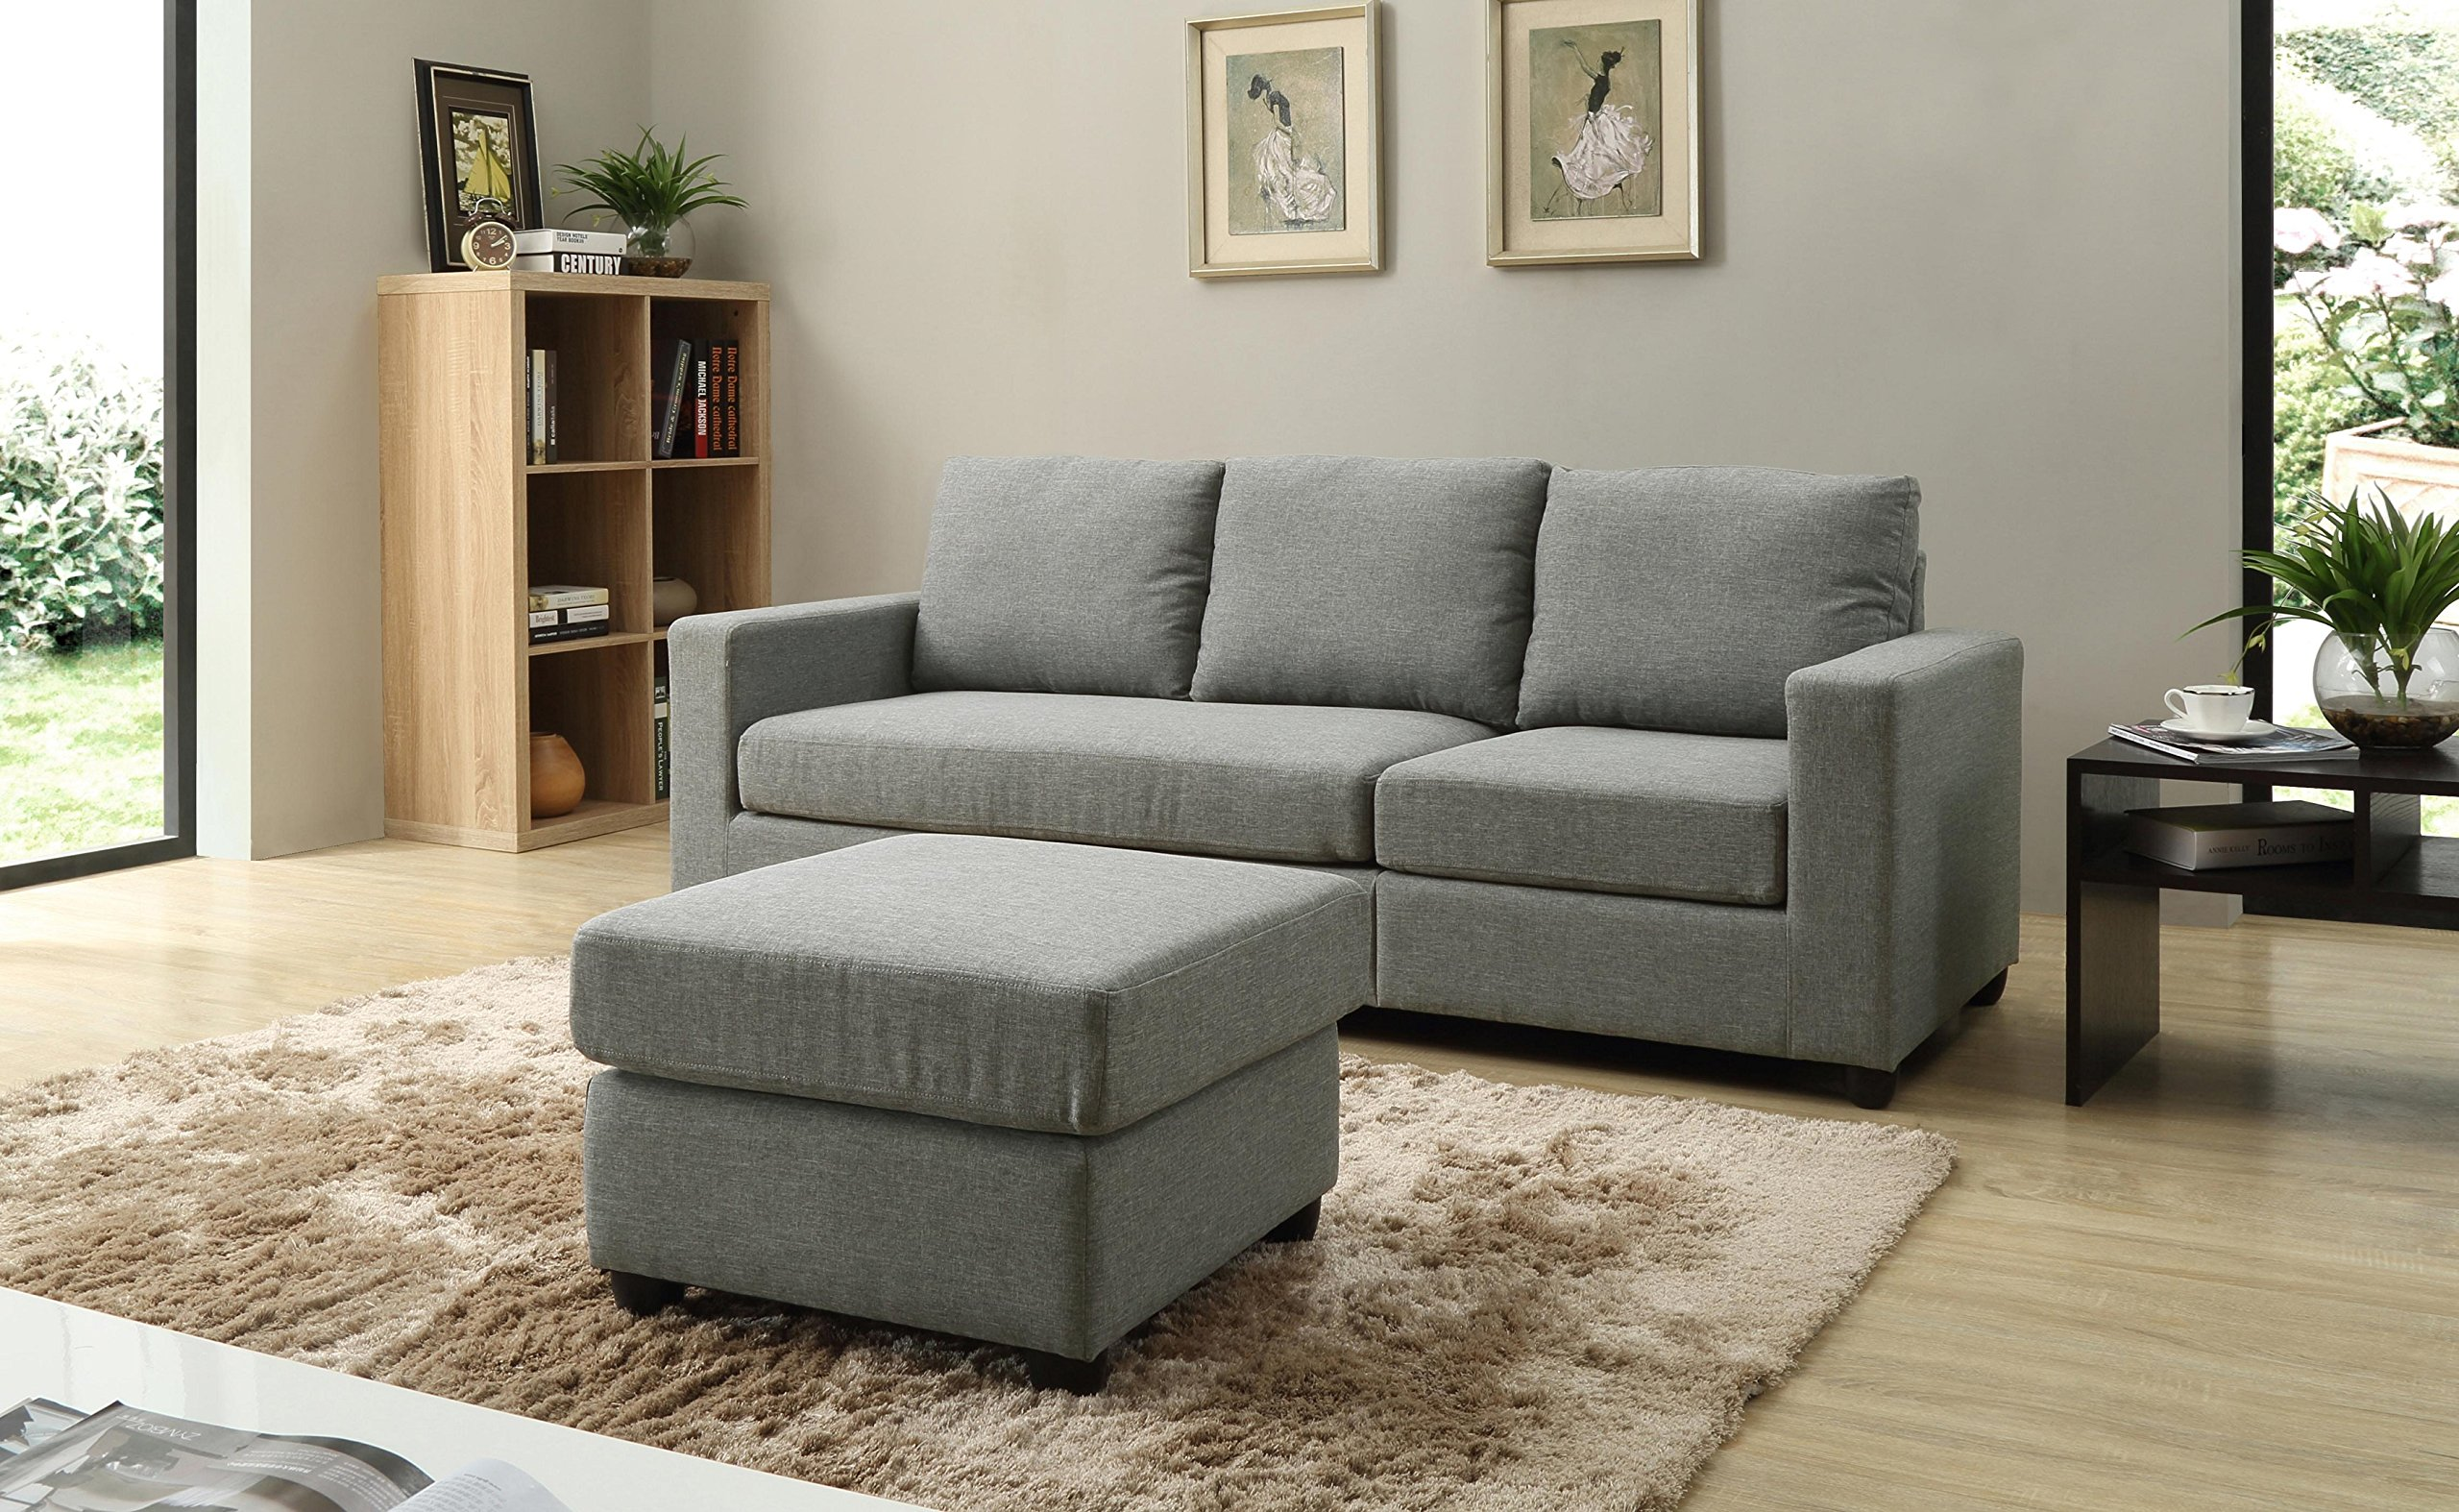 Nice NHI Express Alexandra Convertible Sectional Sofa, Grey